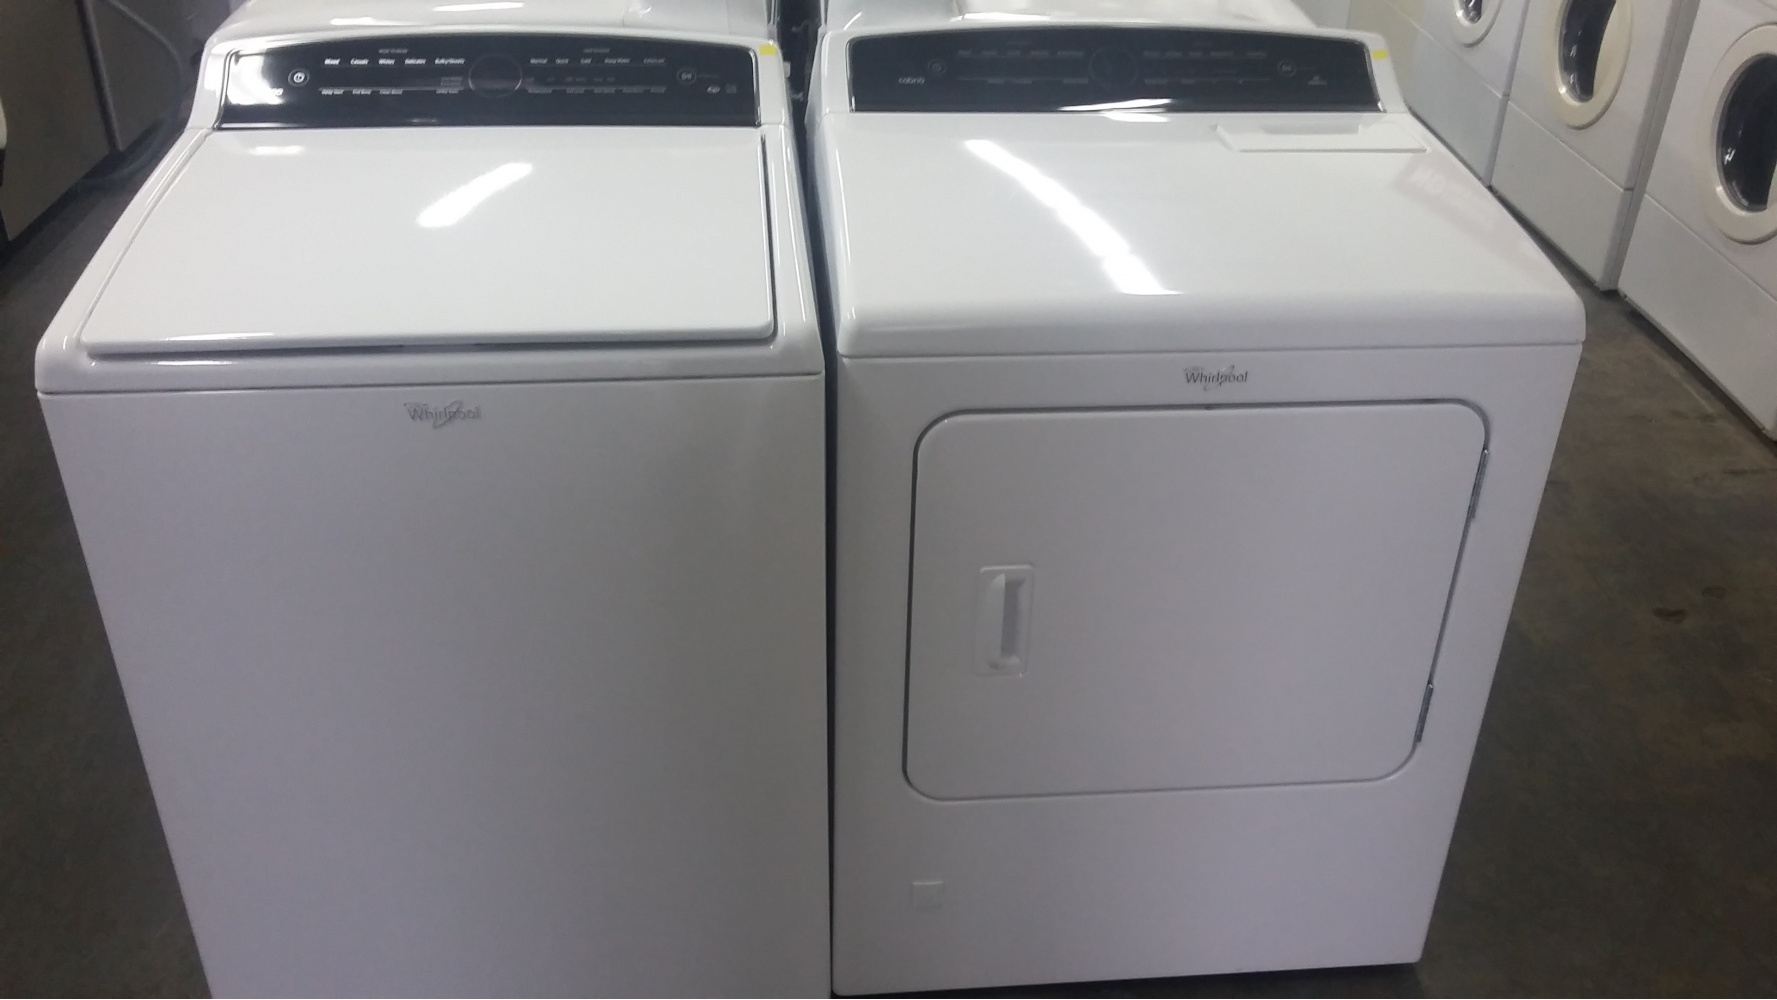 Whirlpool Cabrio Washer And dryer instruction manual Machine